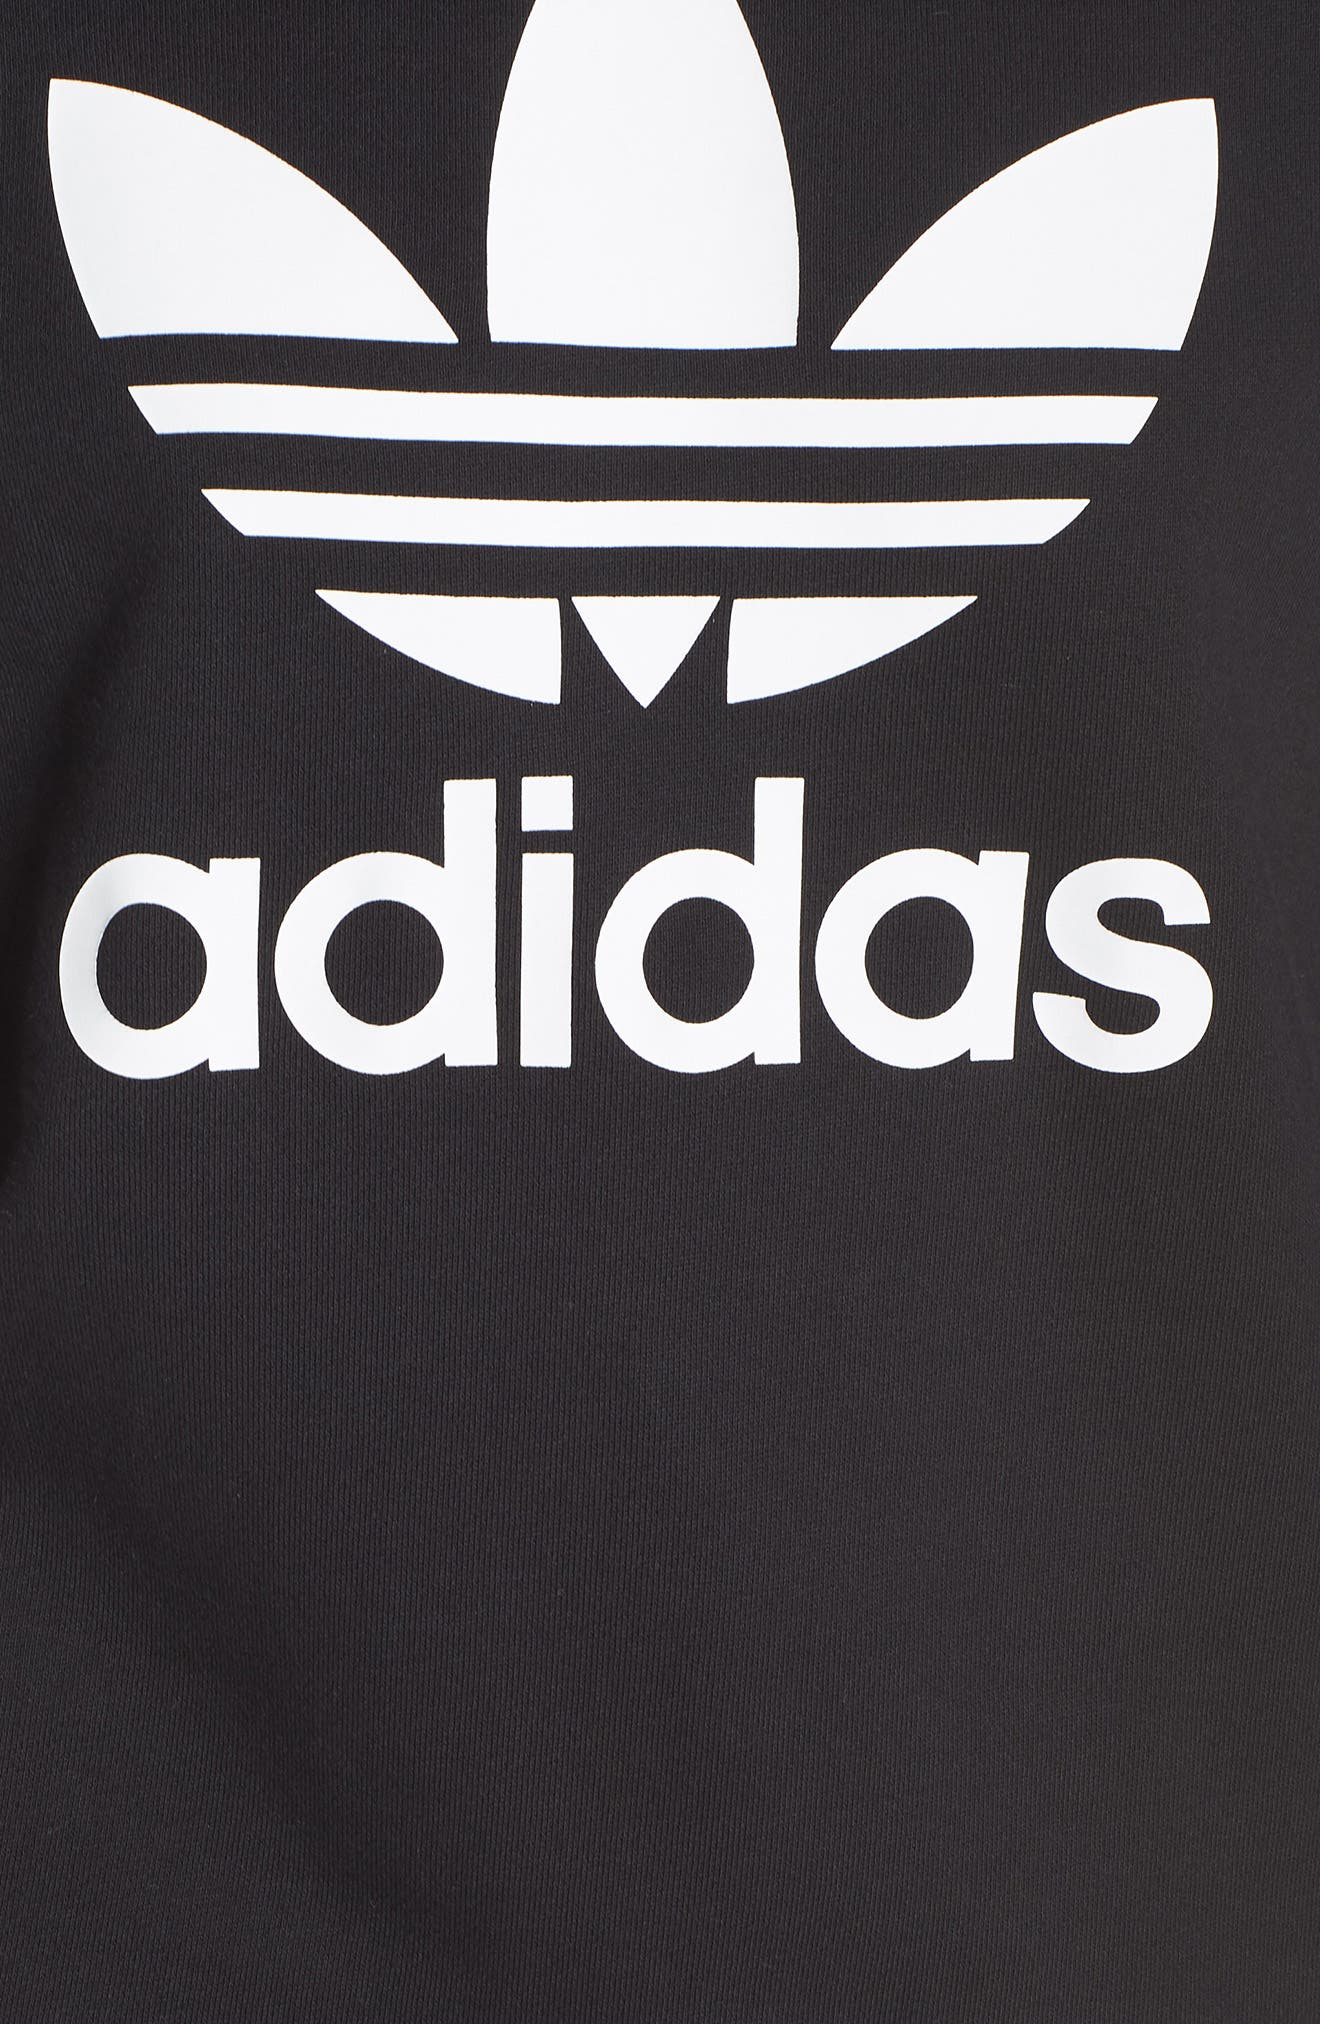 ADIDAS ORIGINALS,                             Trefoil Sweatshirt,                             Alternate thumbnail 6, color,                             BLACK